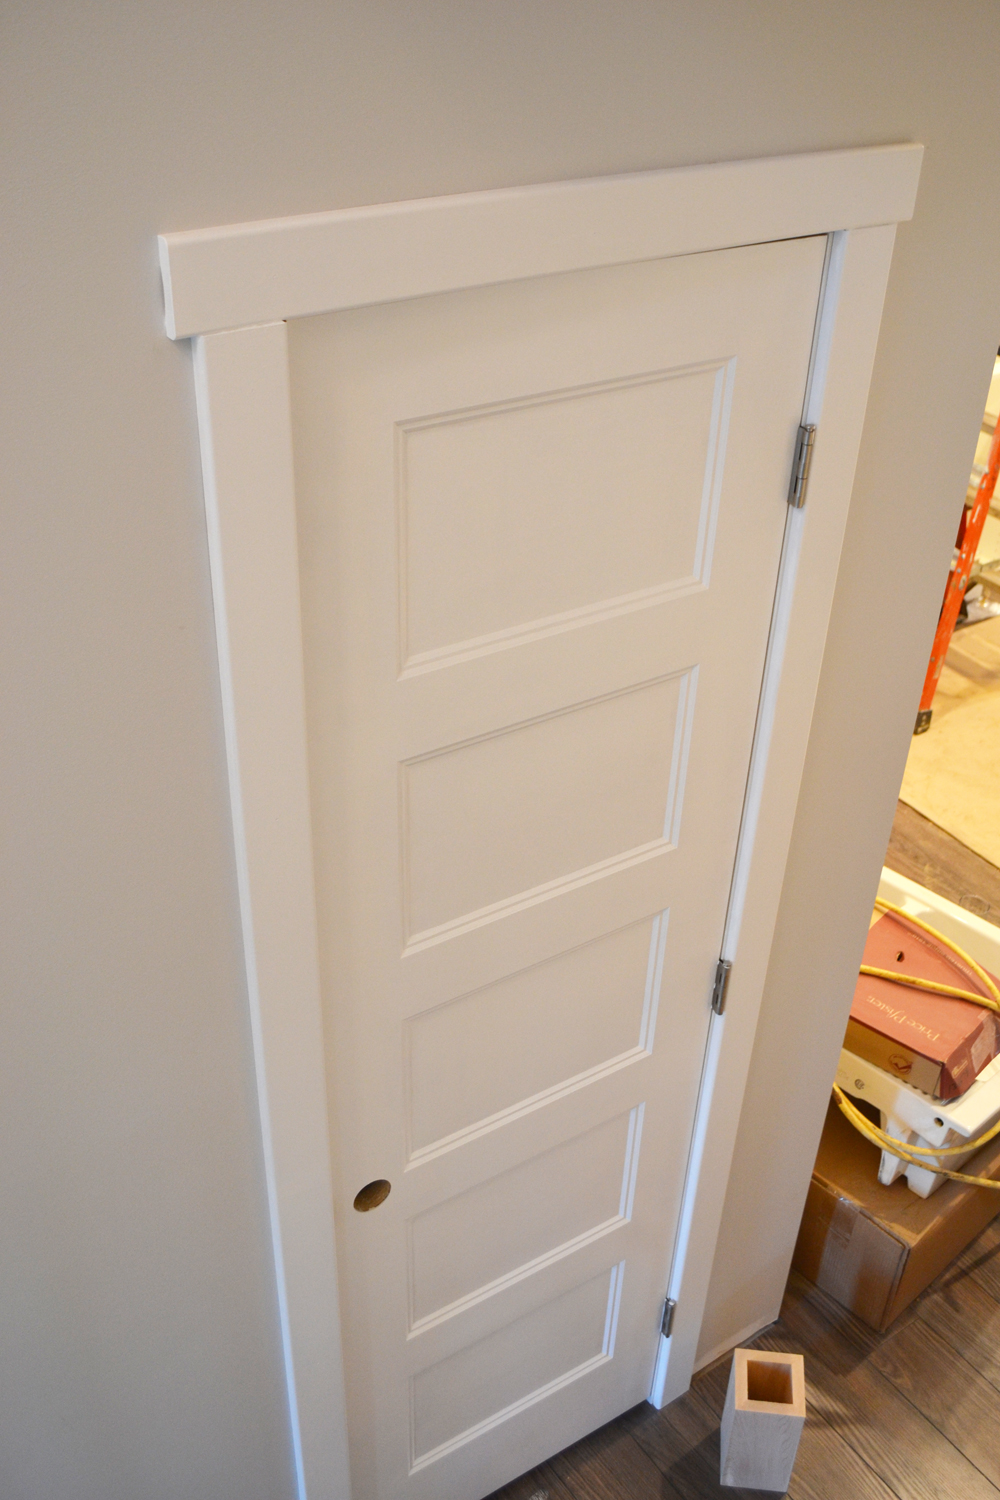 Shaker style one panel interior doors are always appropriate